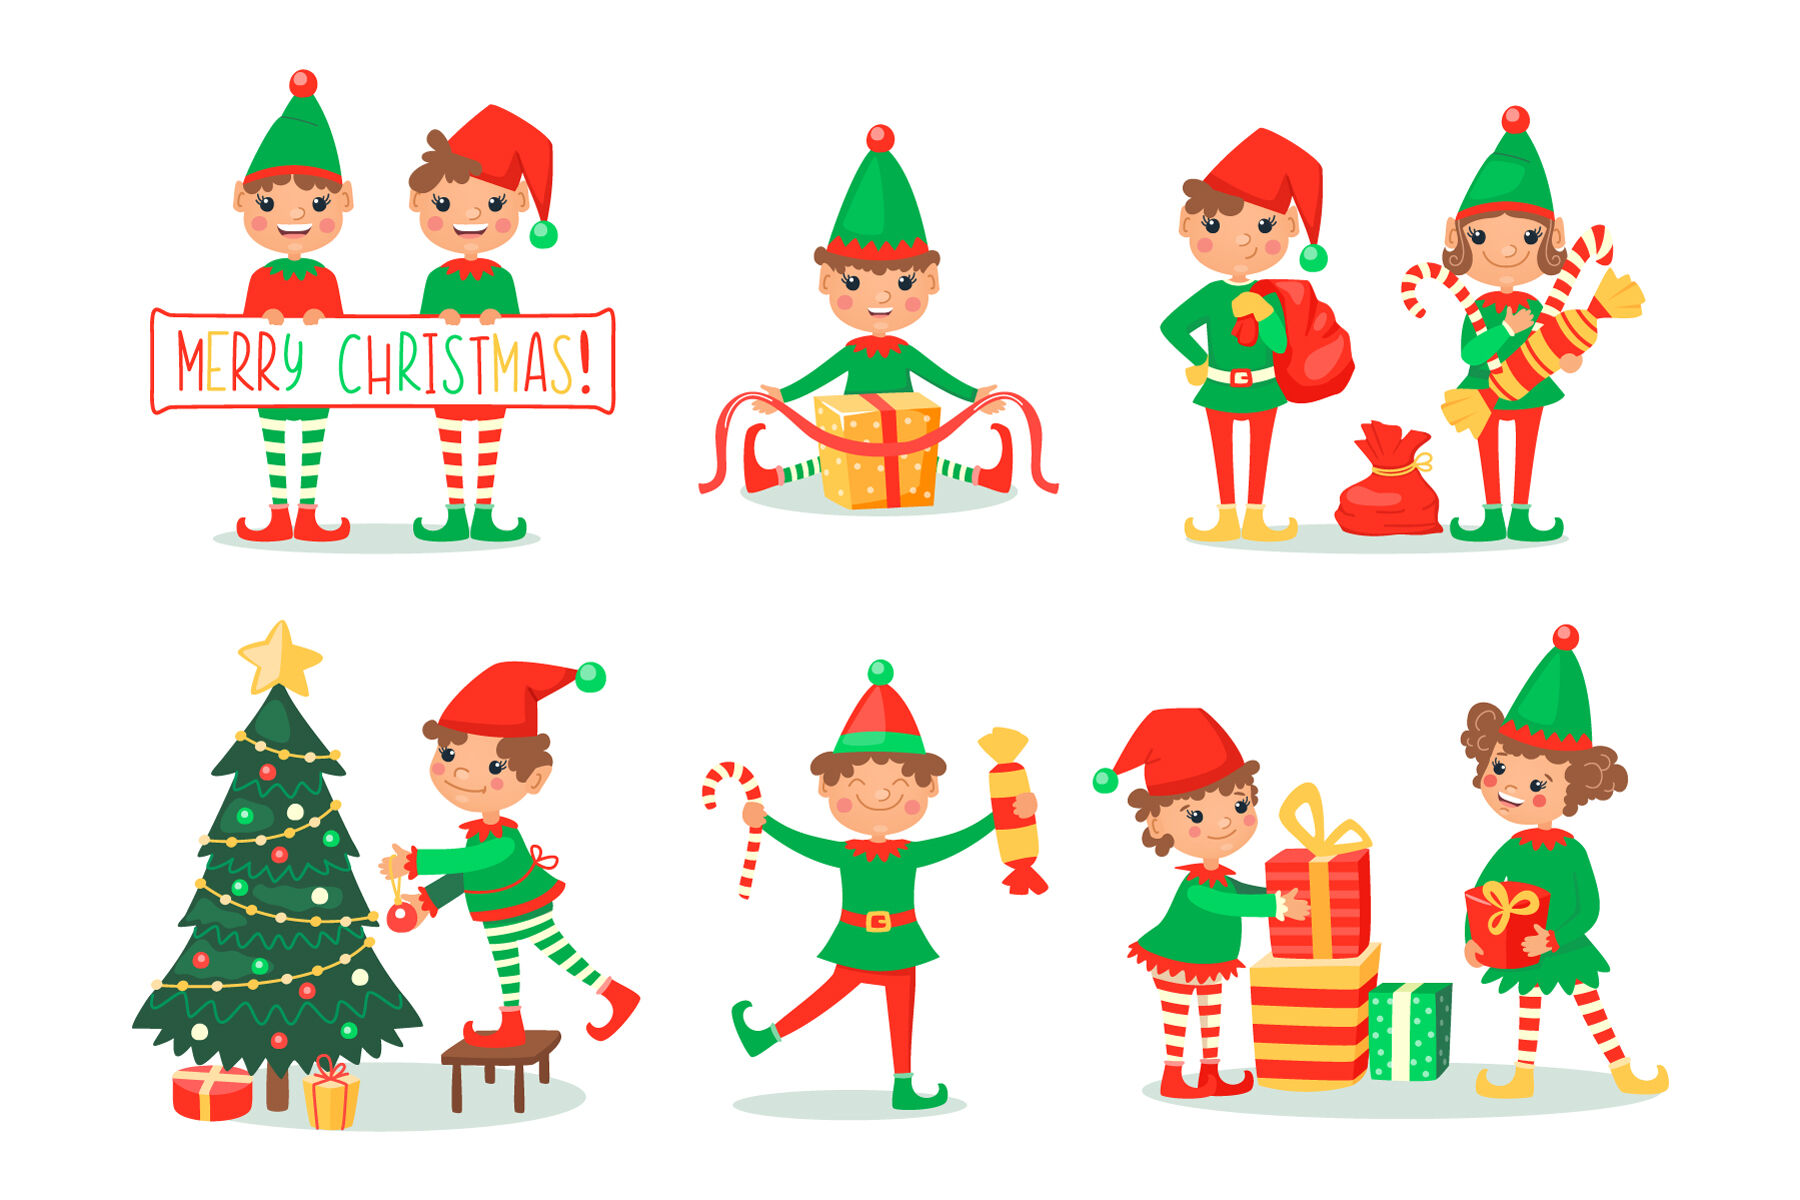 Christmas Cartoon Set With Elves And Santa Clause By Nesterova S